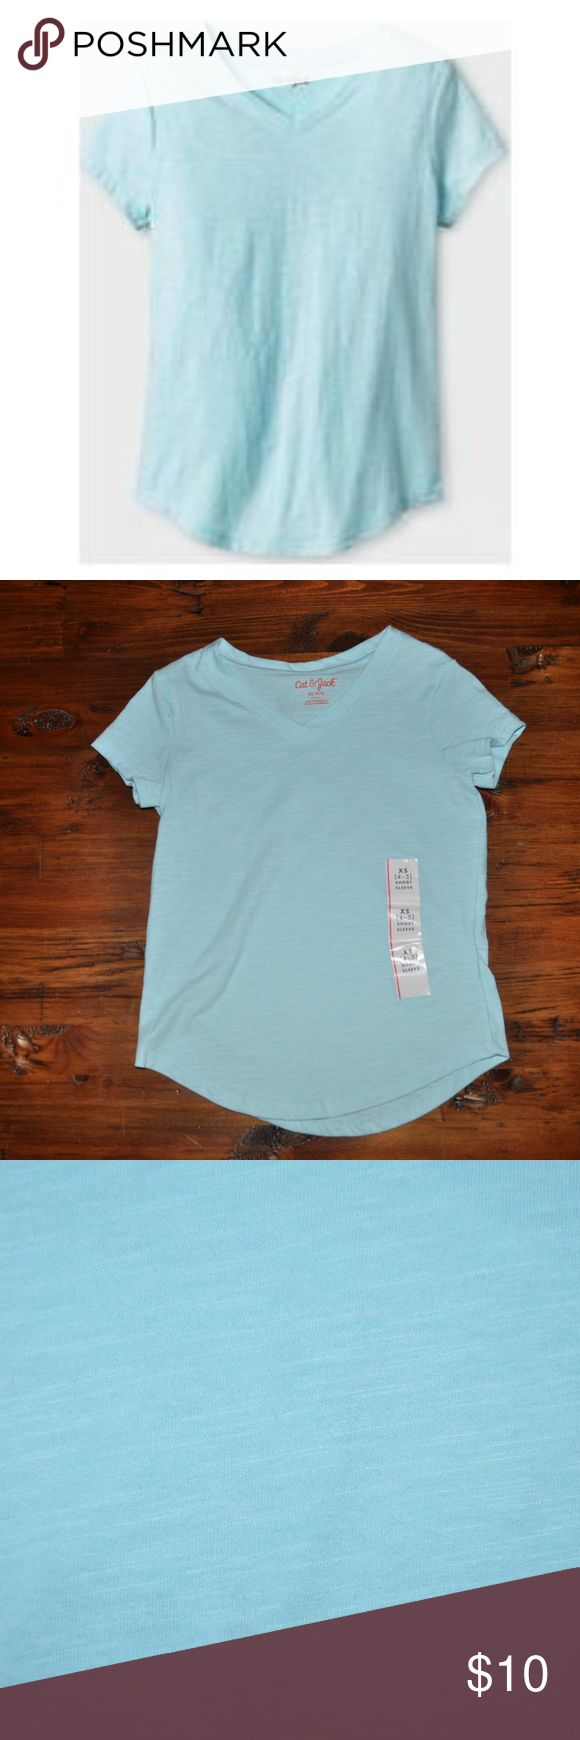 New CAT & JACK V-neck Favorite Tee - Turquoise Updated her wardrobe basics with the Girls' Solid Color V-neck Favorite Tee by Cat & Jack. From shorts to jeans and everything in between, this basic girls' t-shirt might just be her trusty new BFF.   available in size XS (4/5) | M (7/8) | XL (14/16) condition: new without tags color: turquoise glass  @cjrose25  bundle your likes for a private discount Cat & Jack Shirts & Tops Tees - Short Sleeve